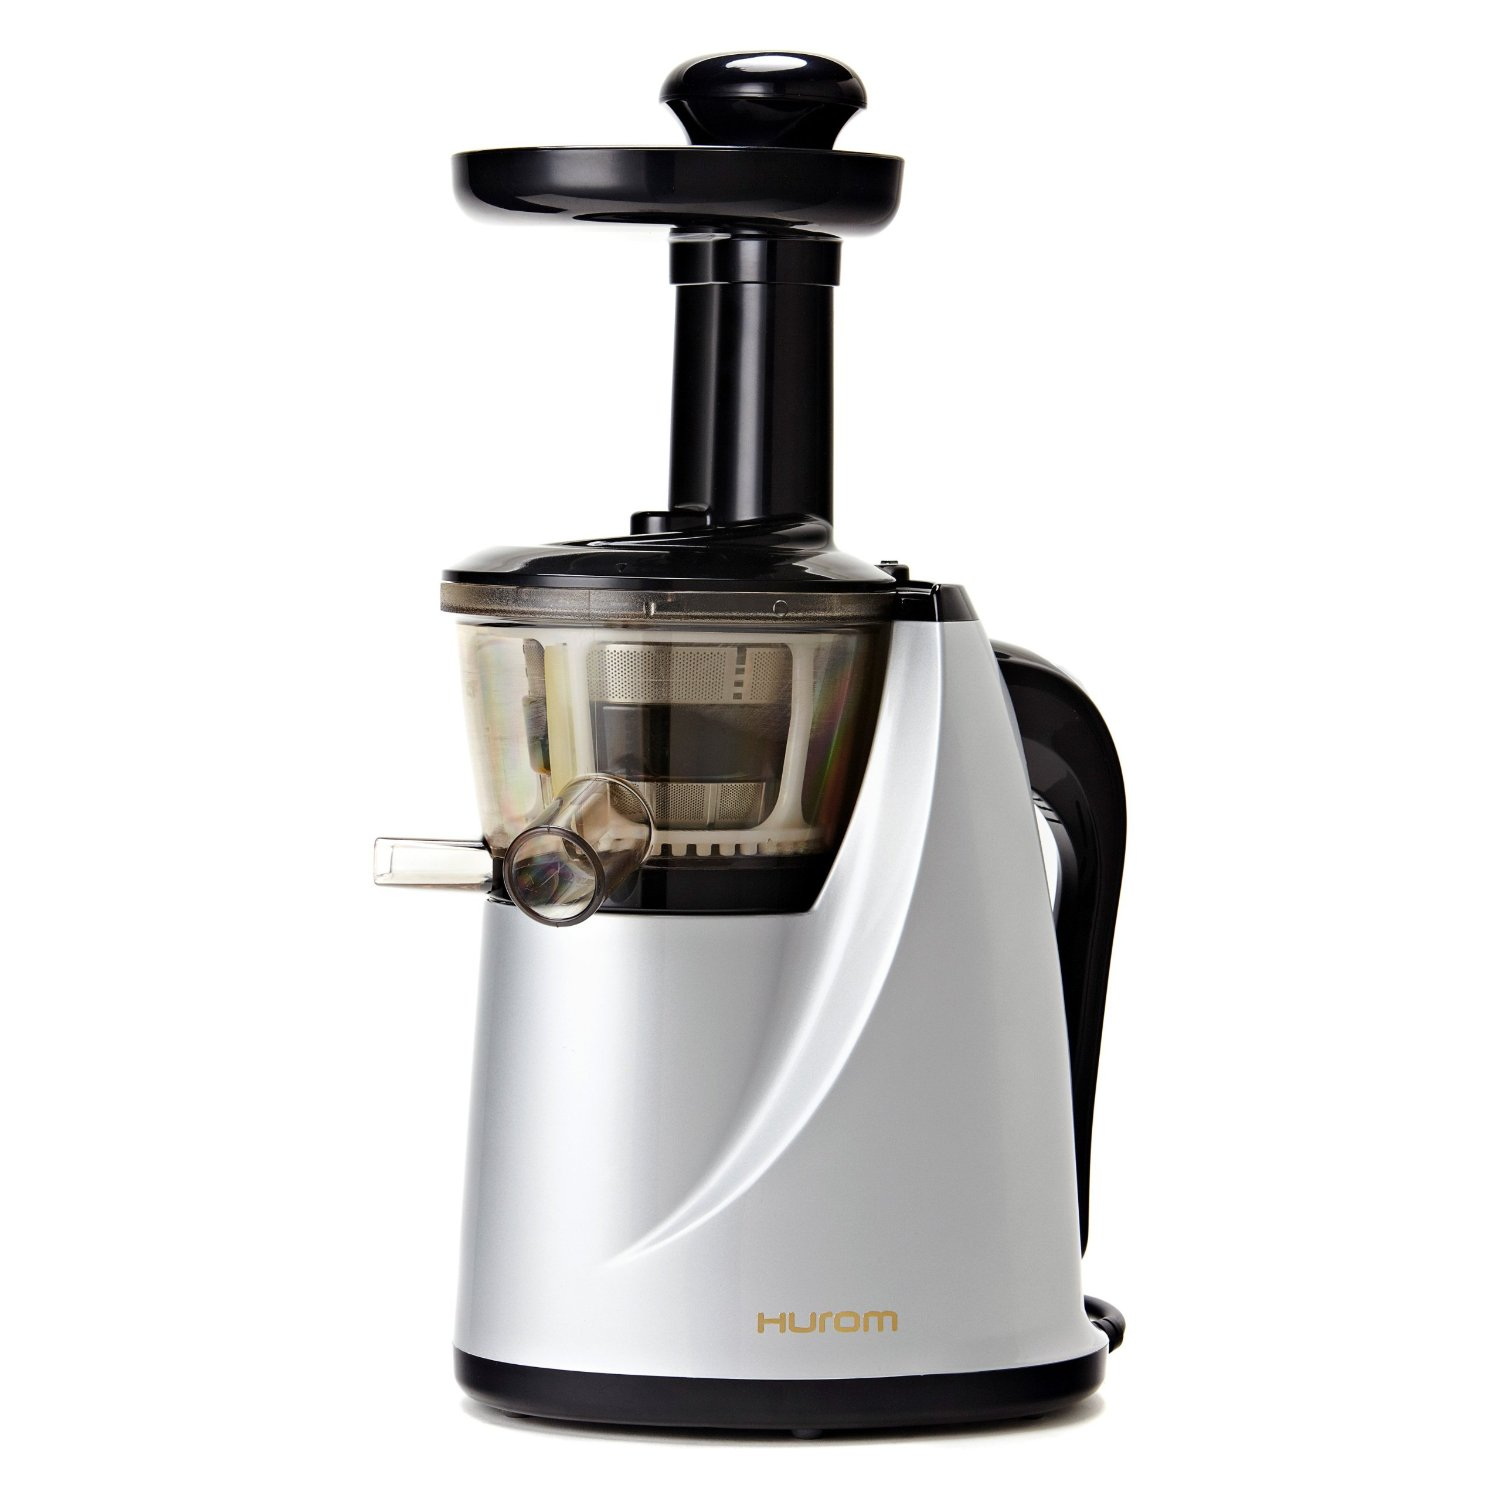 Slow Juicer Amway : Hurom HU-100 Masticating Slow Juicer Review - Best Cold ...